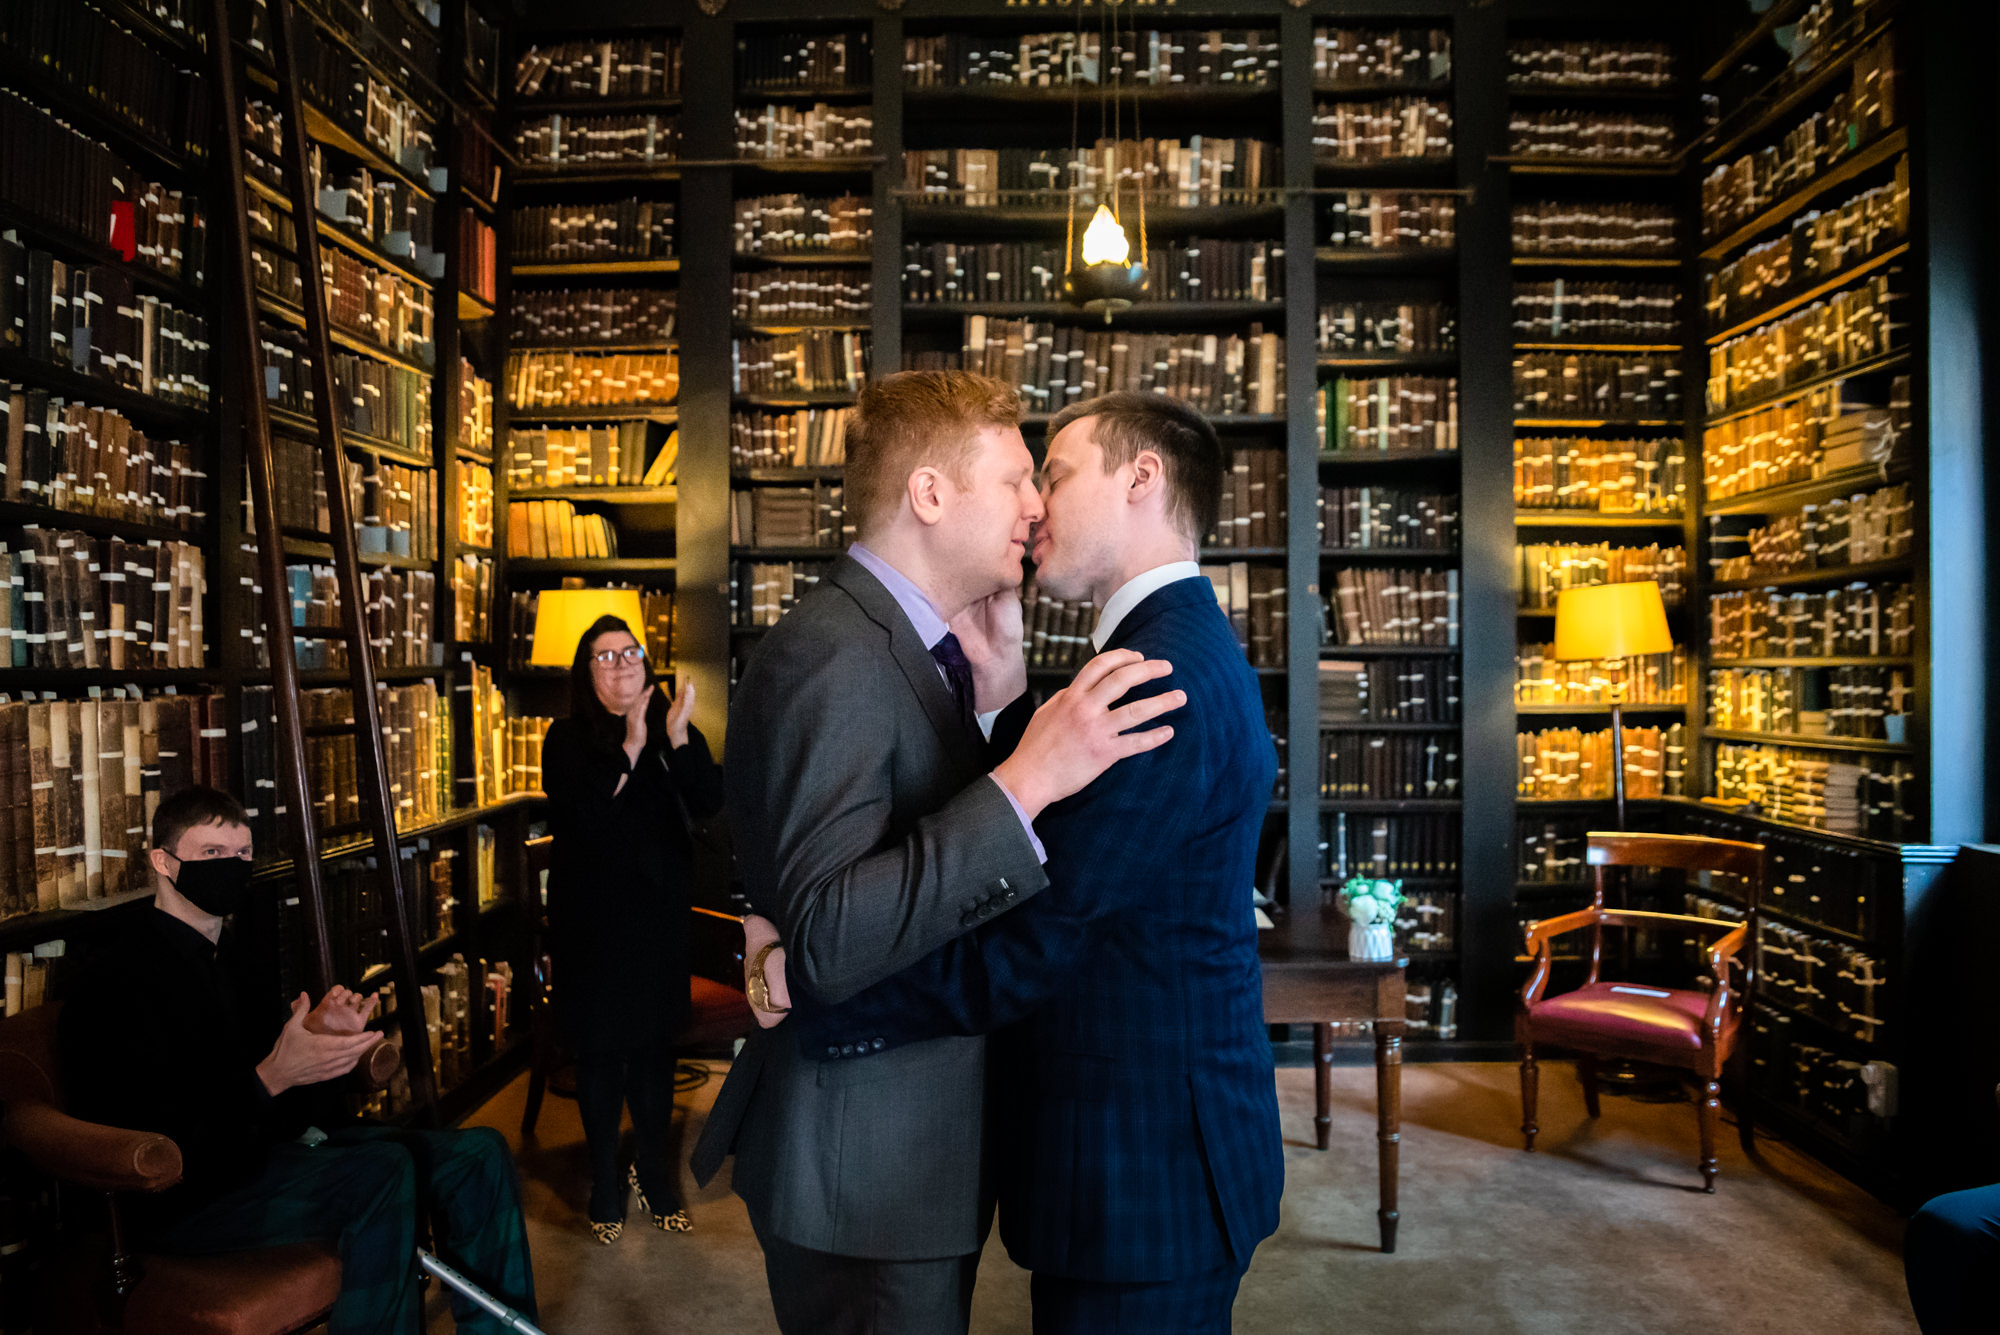 First kiss at The Portico Library